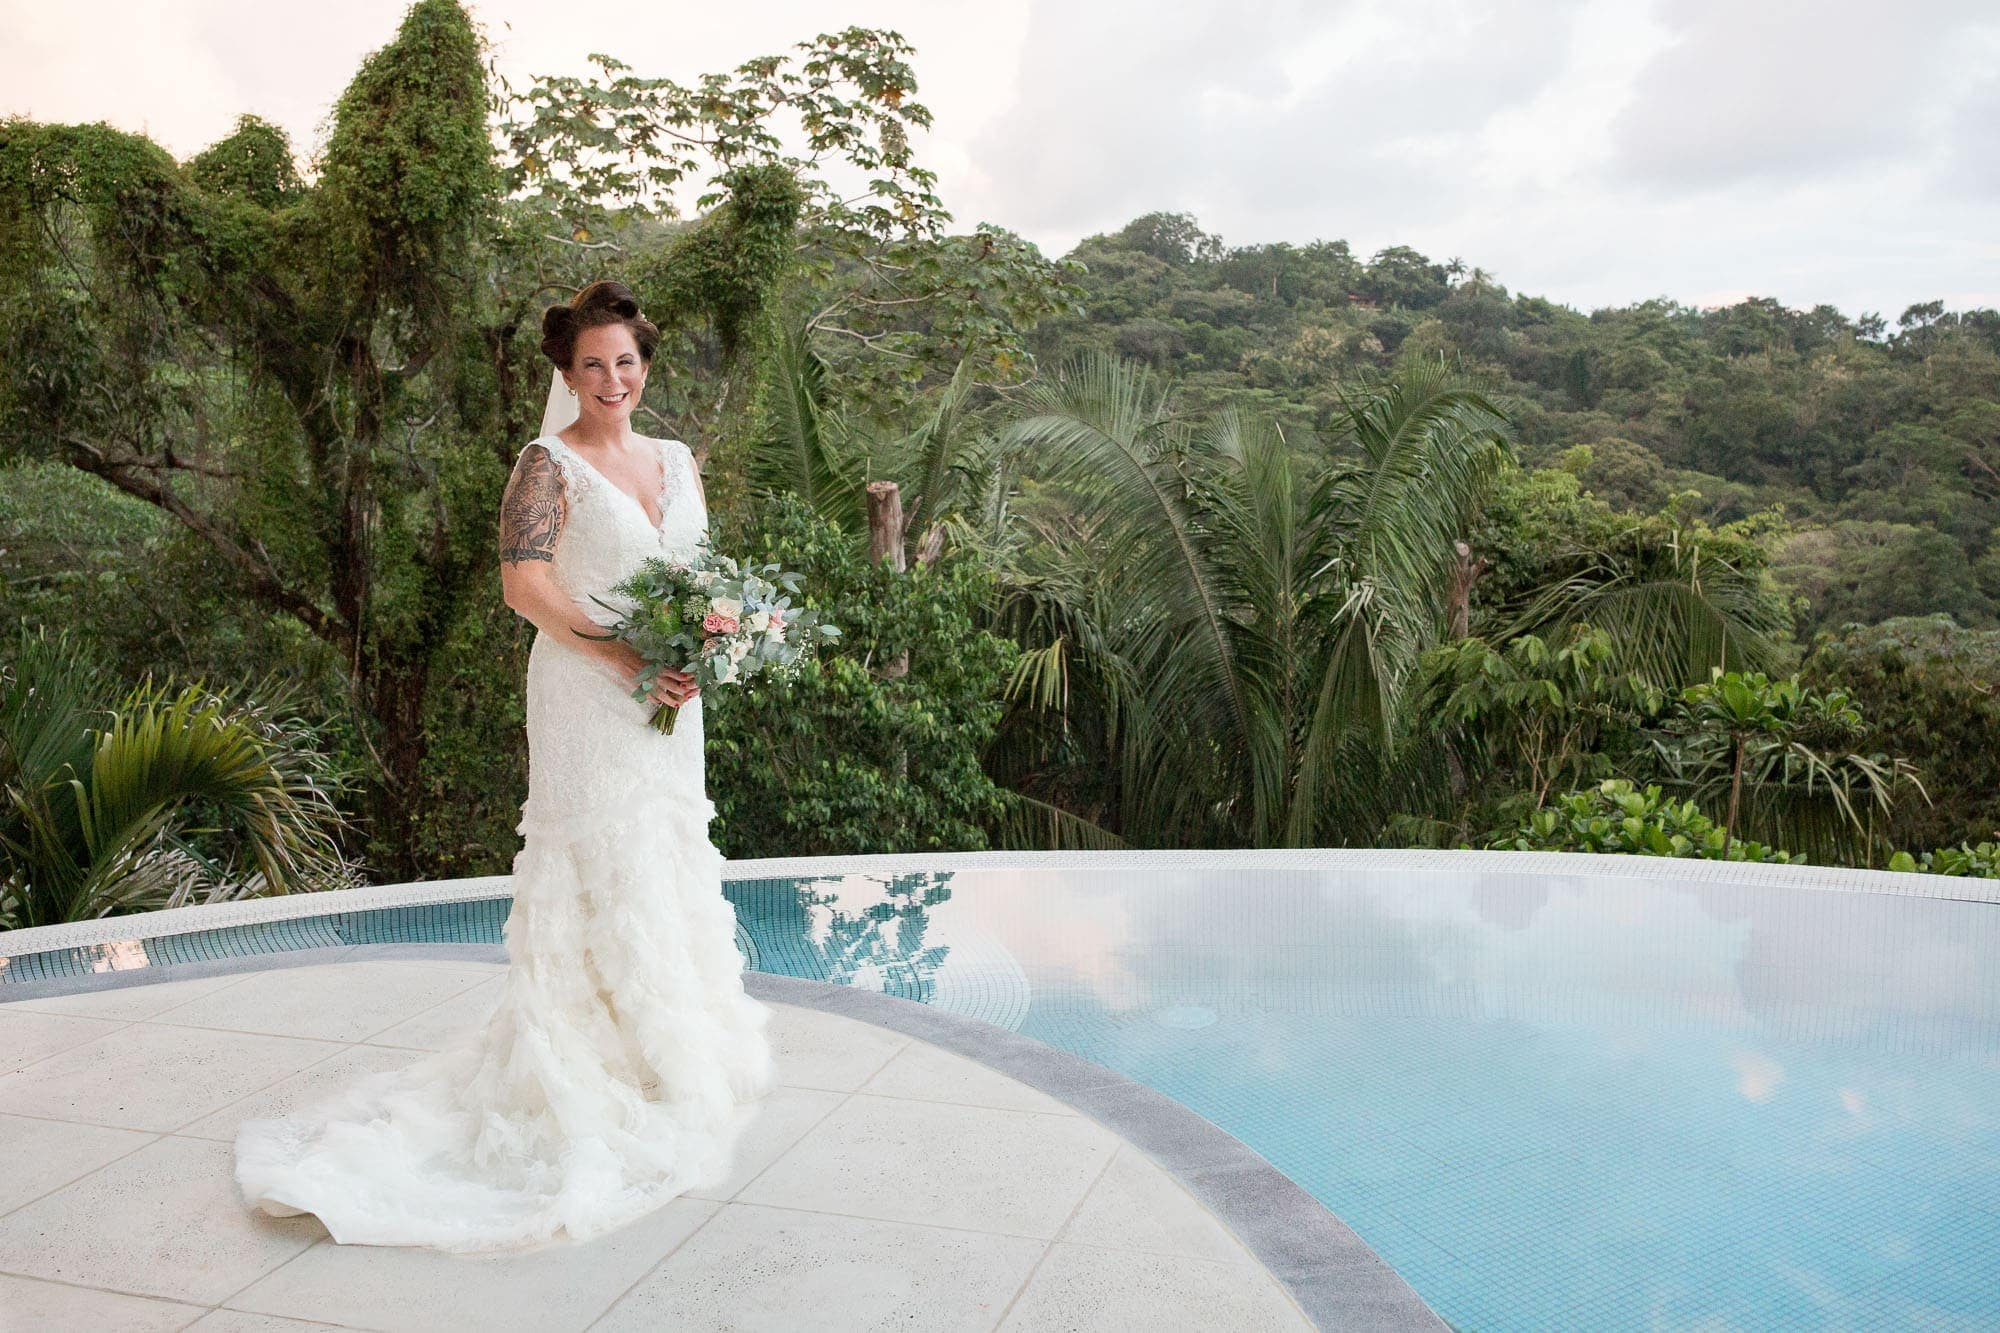 Bride posing by the pool